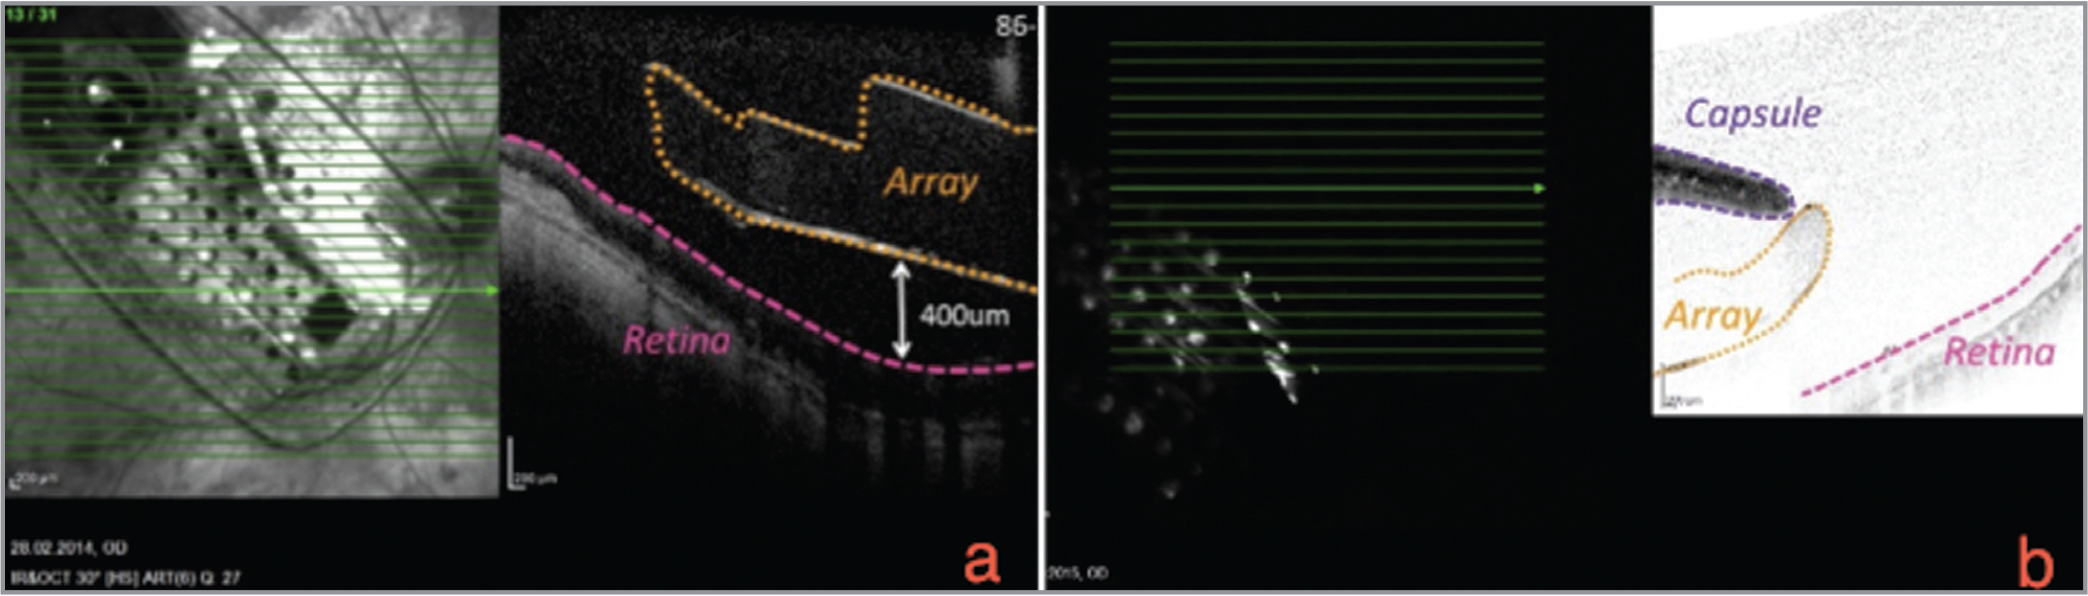 Optical coherence tomography (OCT). (a) Shows the first chip; (b) the new chip. Because of a vascularized fibrotic capsule above the new chip, OCT quality is limited.